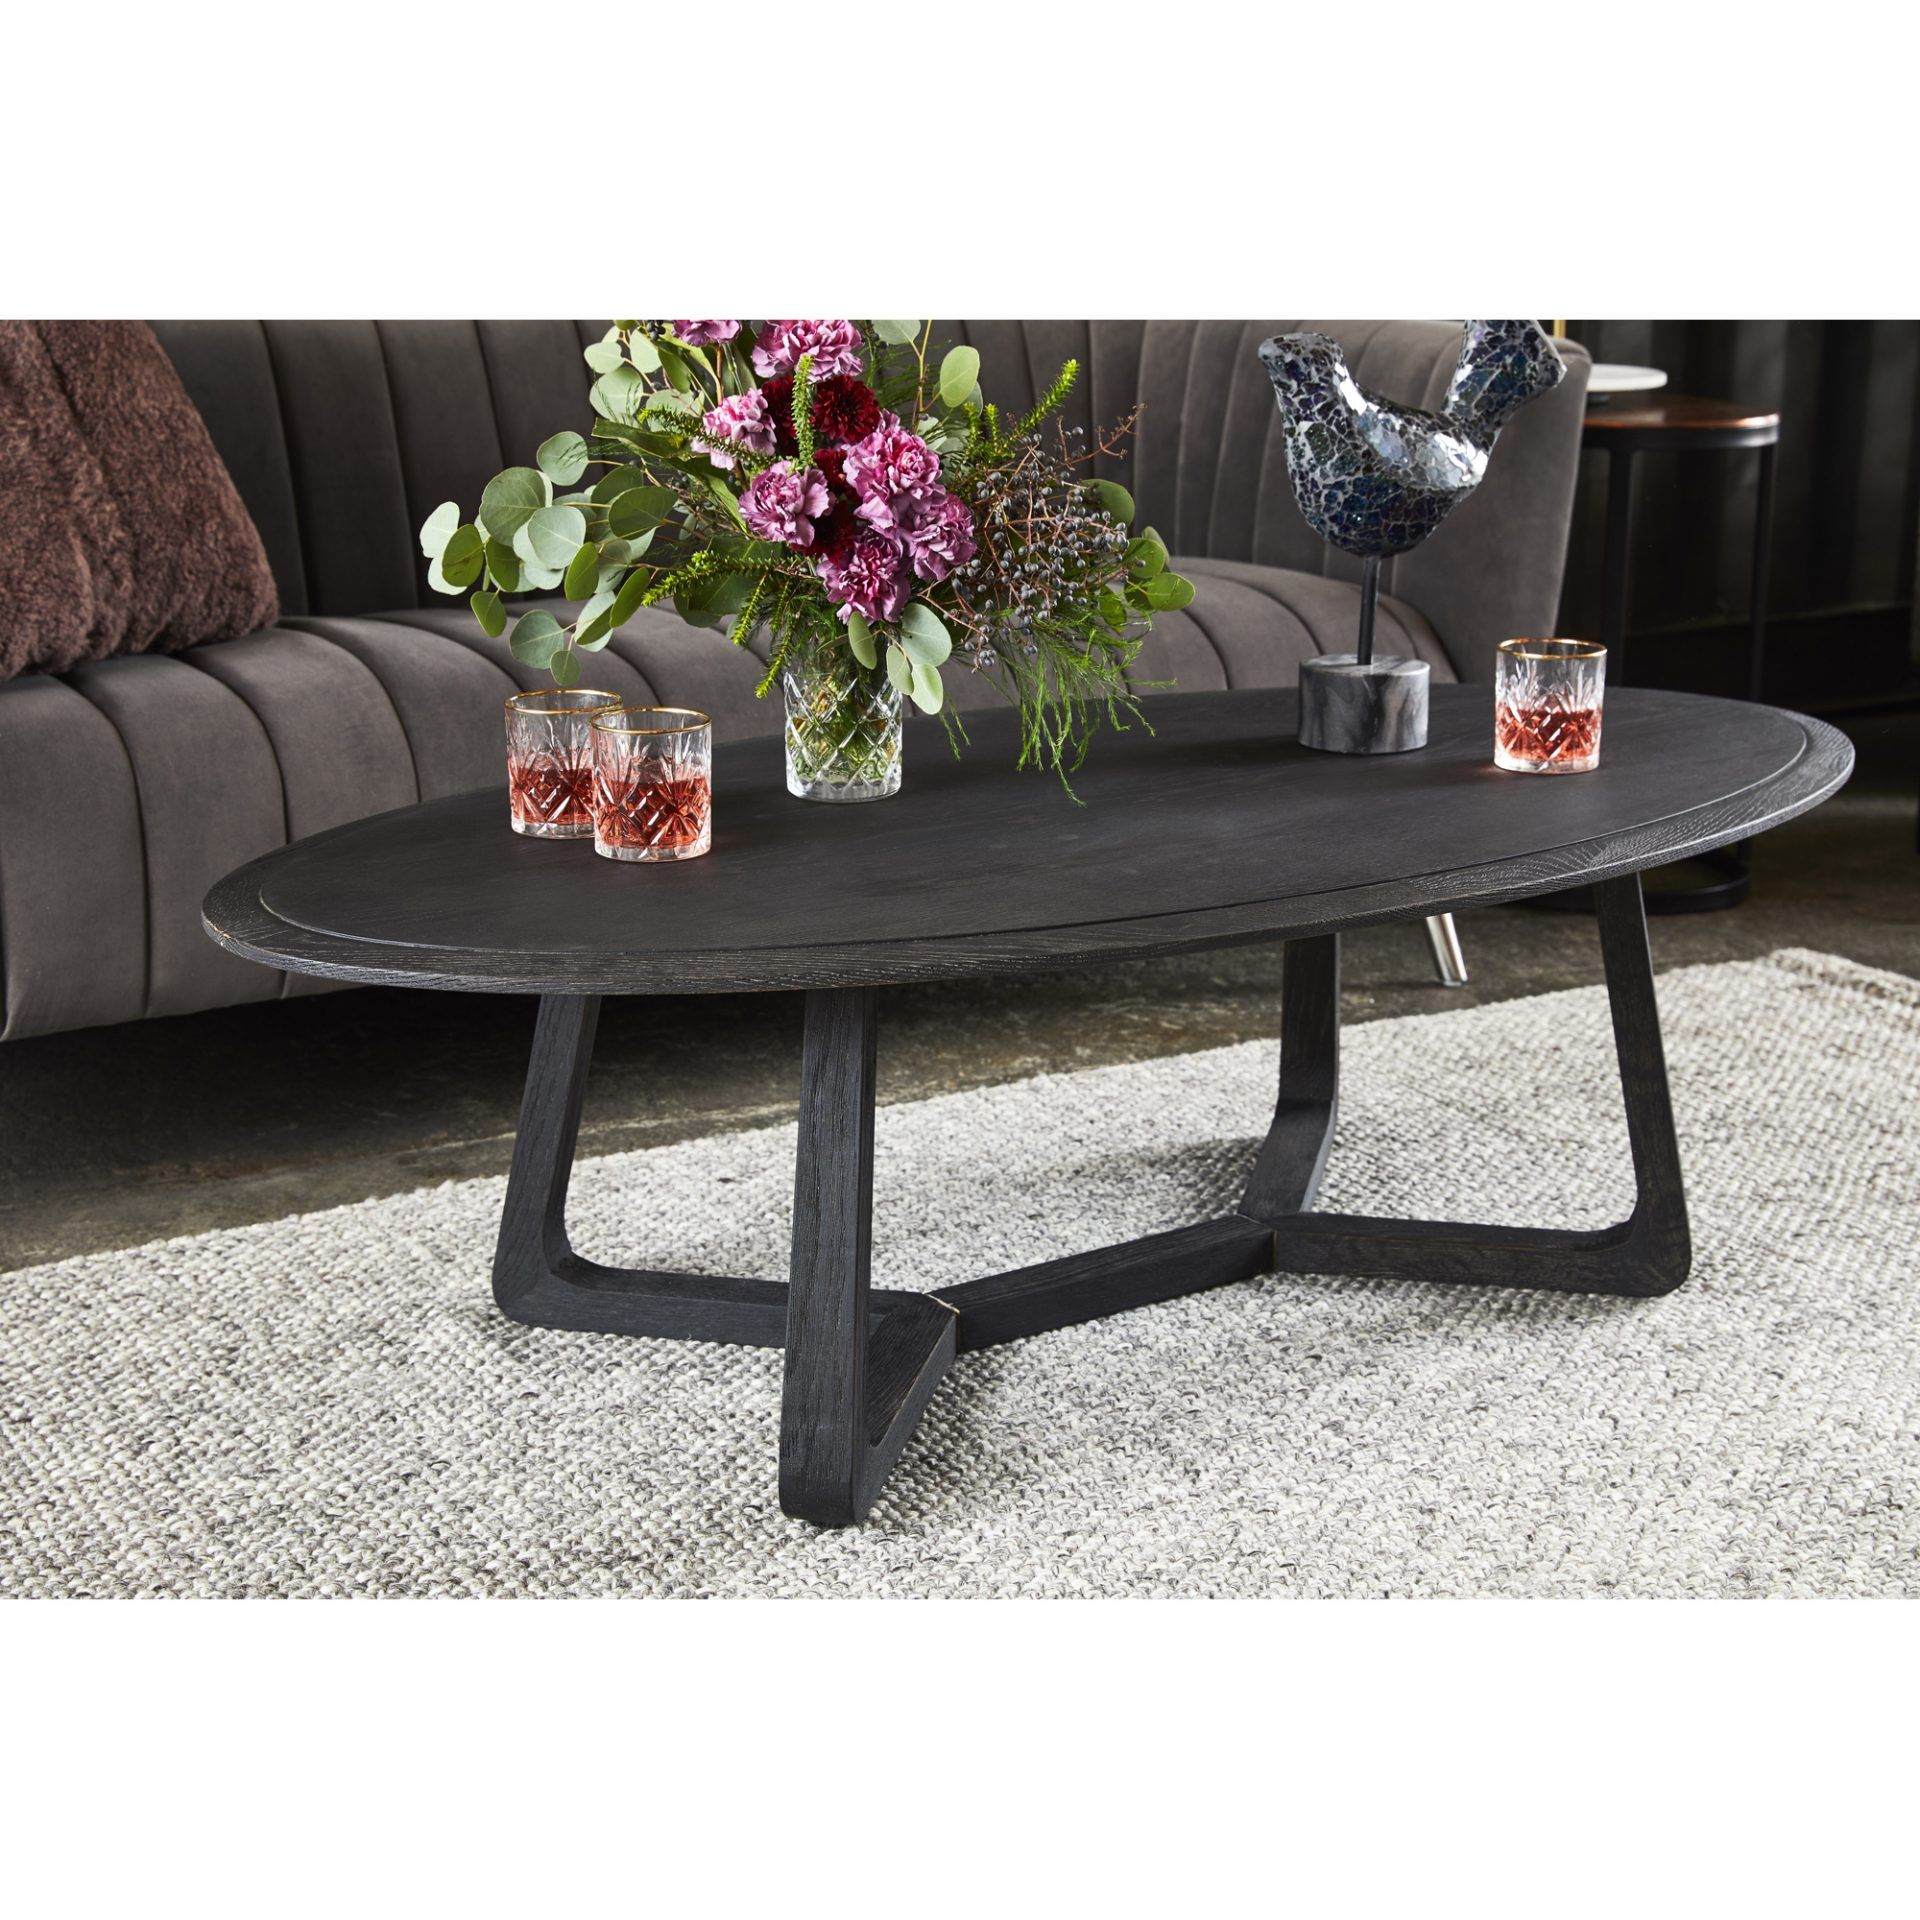 Nathan Coffee Table Products Moe S Wholesale Coffee Table Solid Oak Coffee Table Modern Coffee Tables [ jpg ]